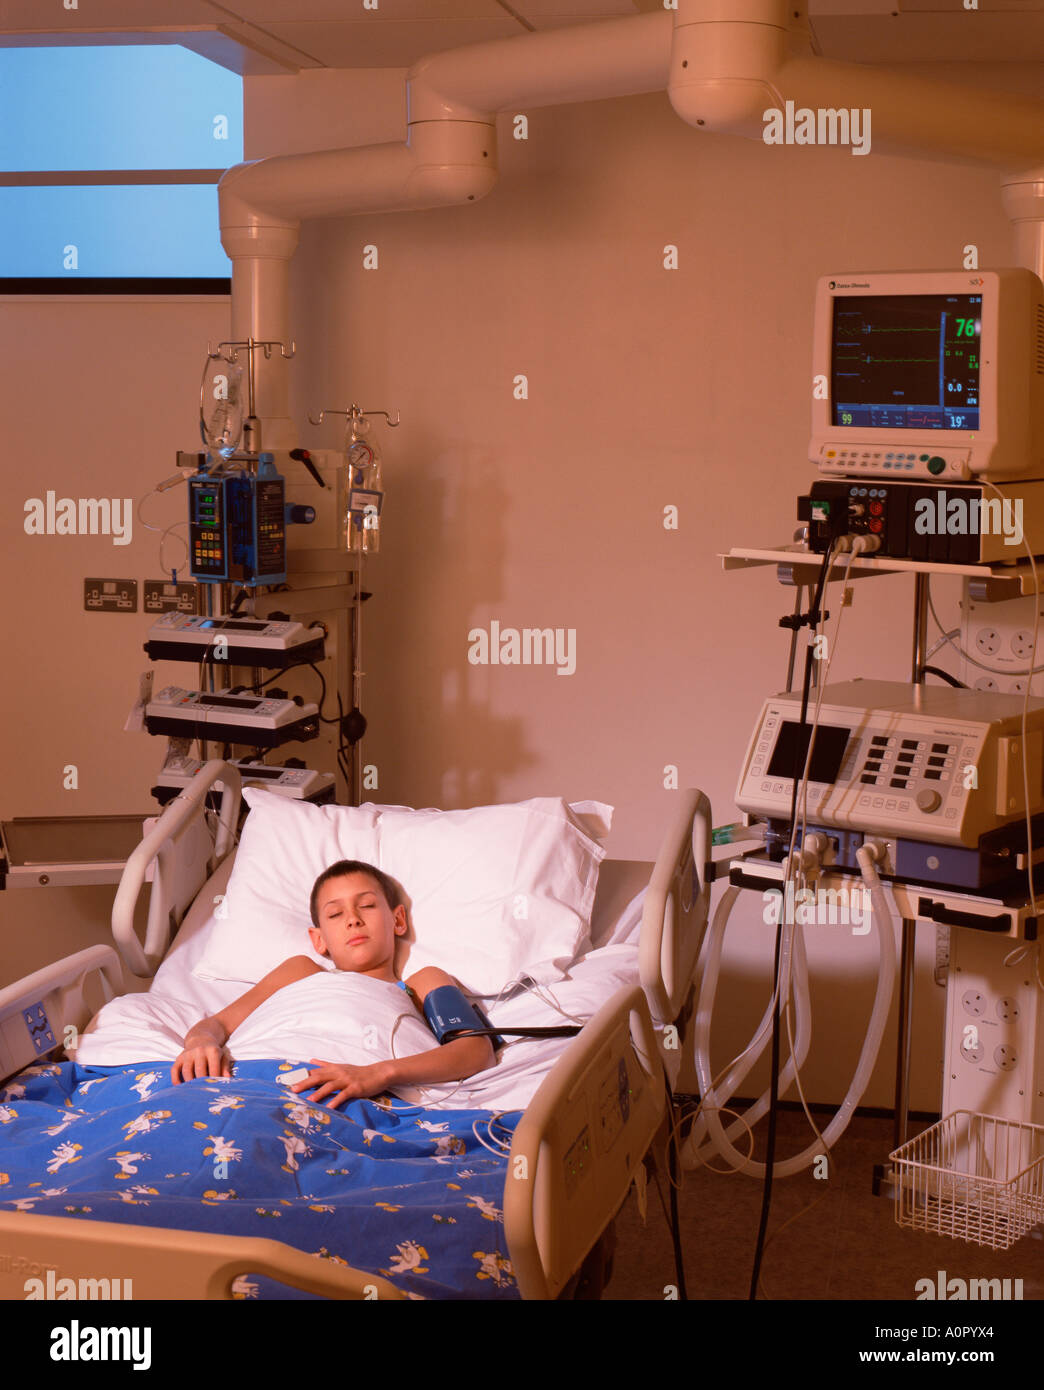 Hospital. Paediatrics. Young boy patient in Intensive care ward bed. - Stock Image